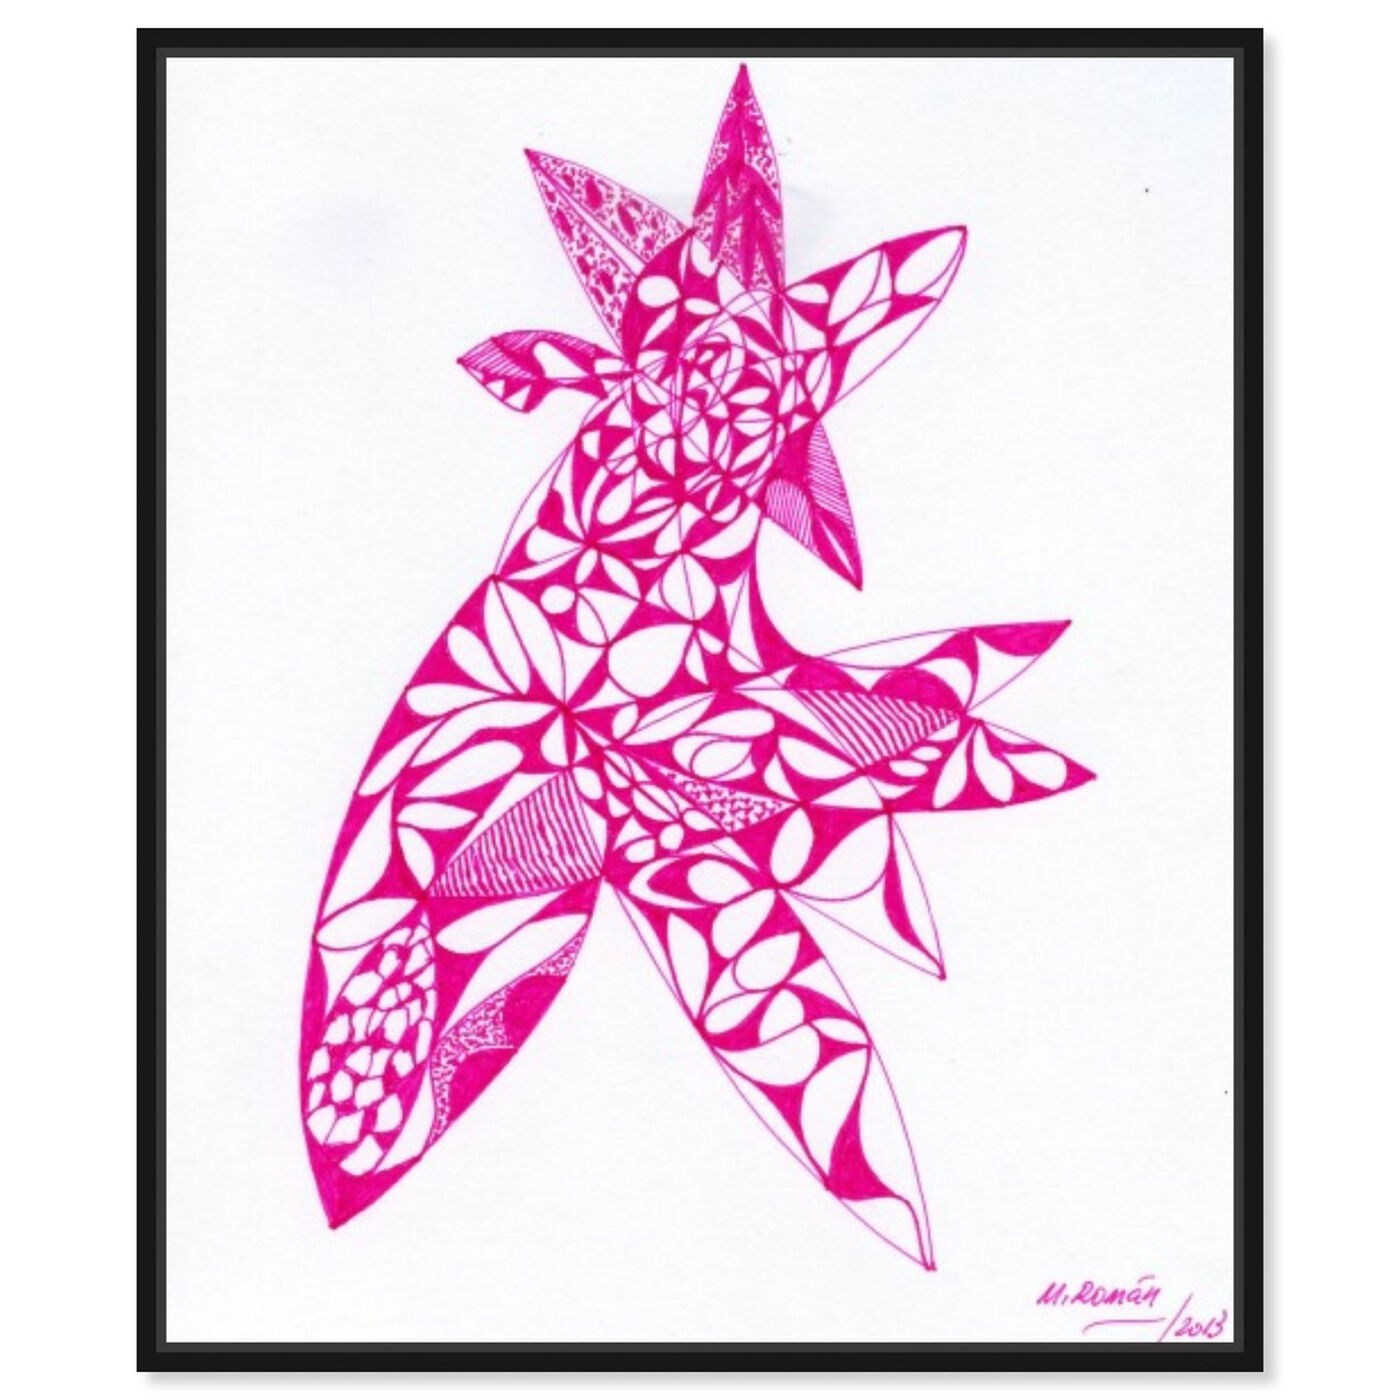 Front view of Agri Rosea featuring abstract and flowers art.